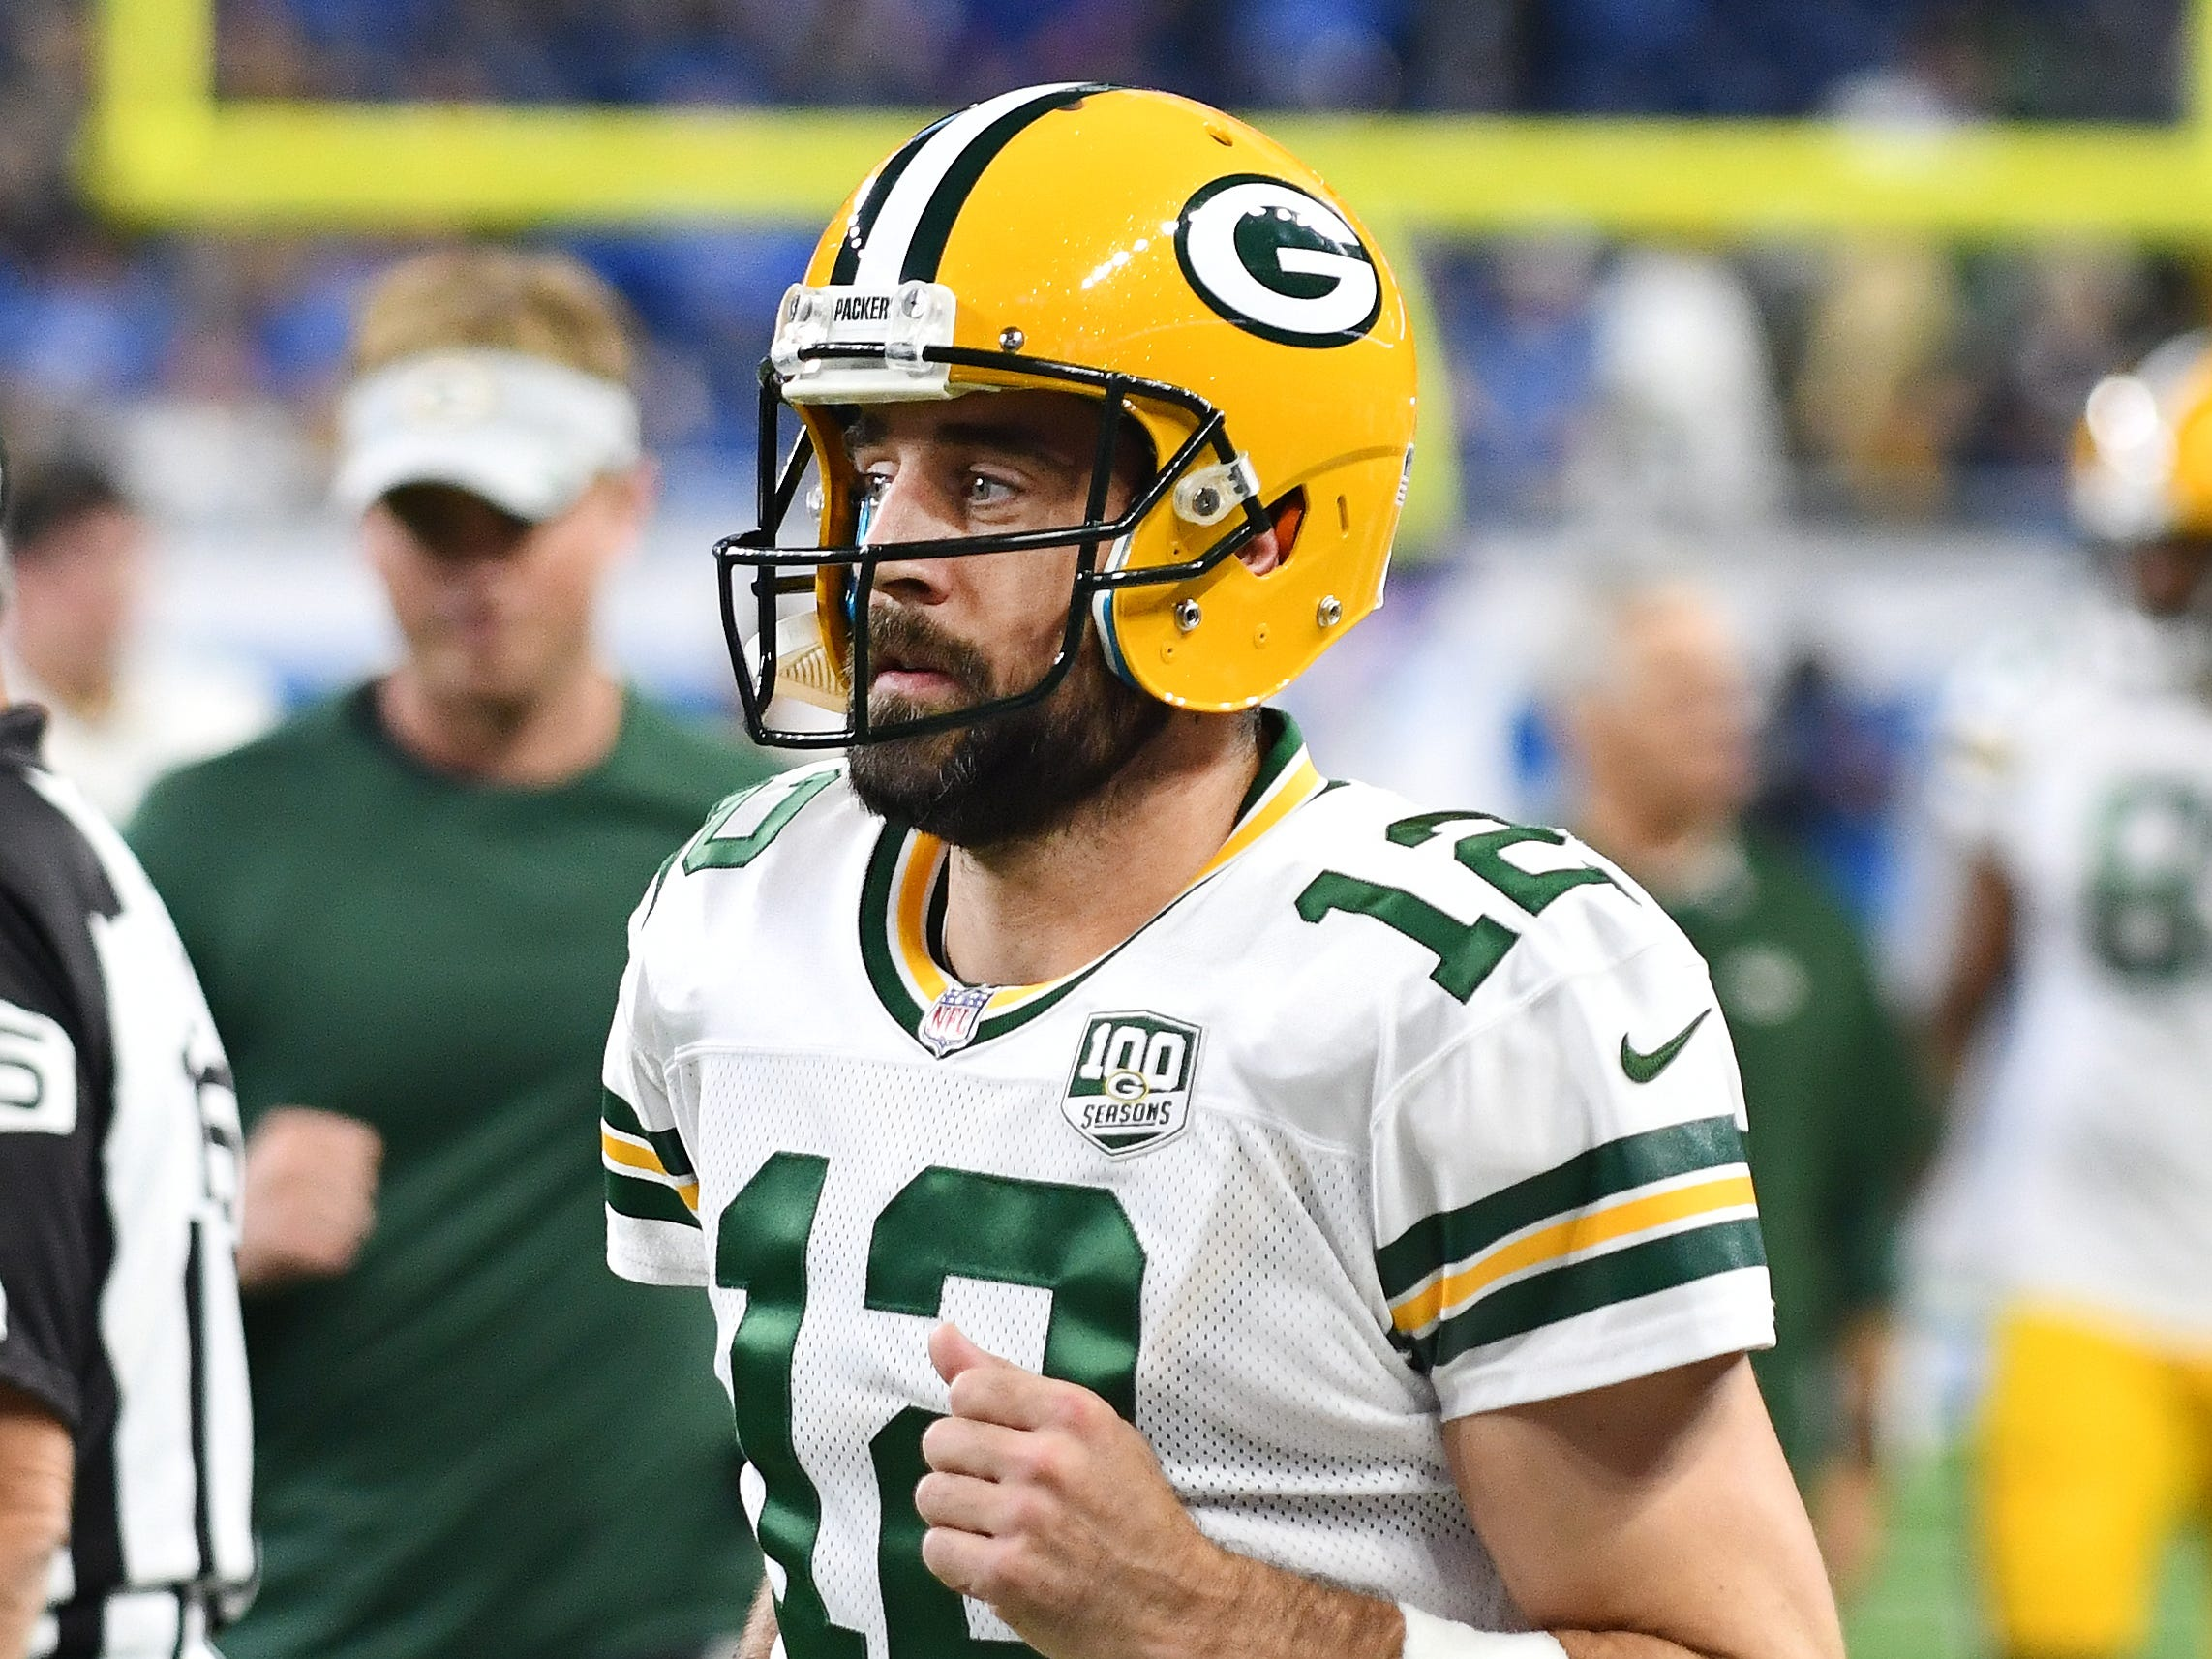 Packers quarterback Aaron Rodgers heads off the field after the warmups.